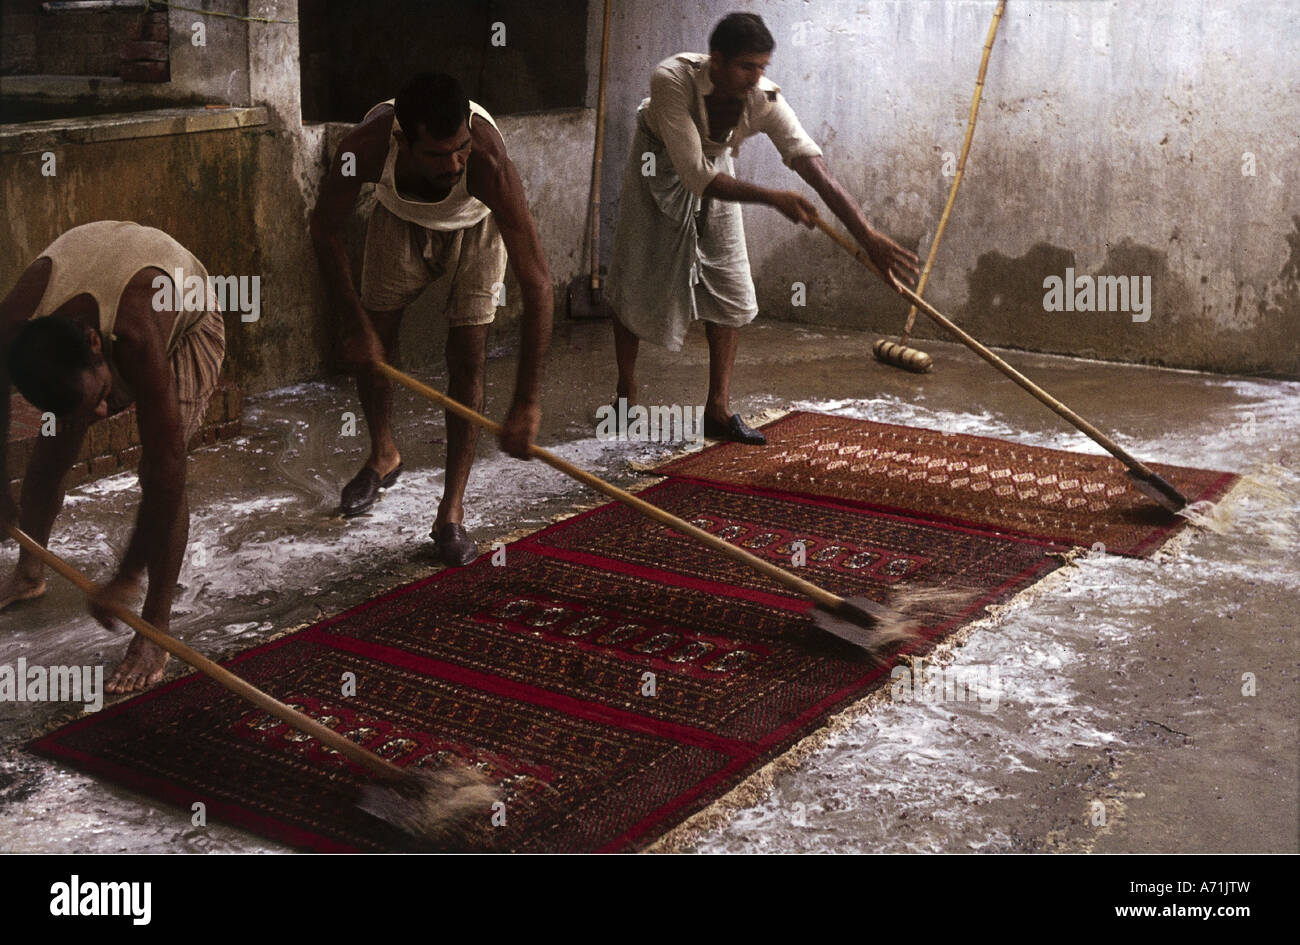 people, profession, Pakistan, worker cleaning carpets, job, knot, rug, production, oriental, work, handcraft, craft, - Stock Image